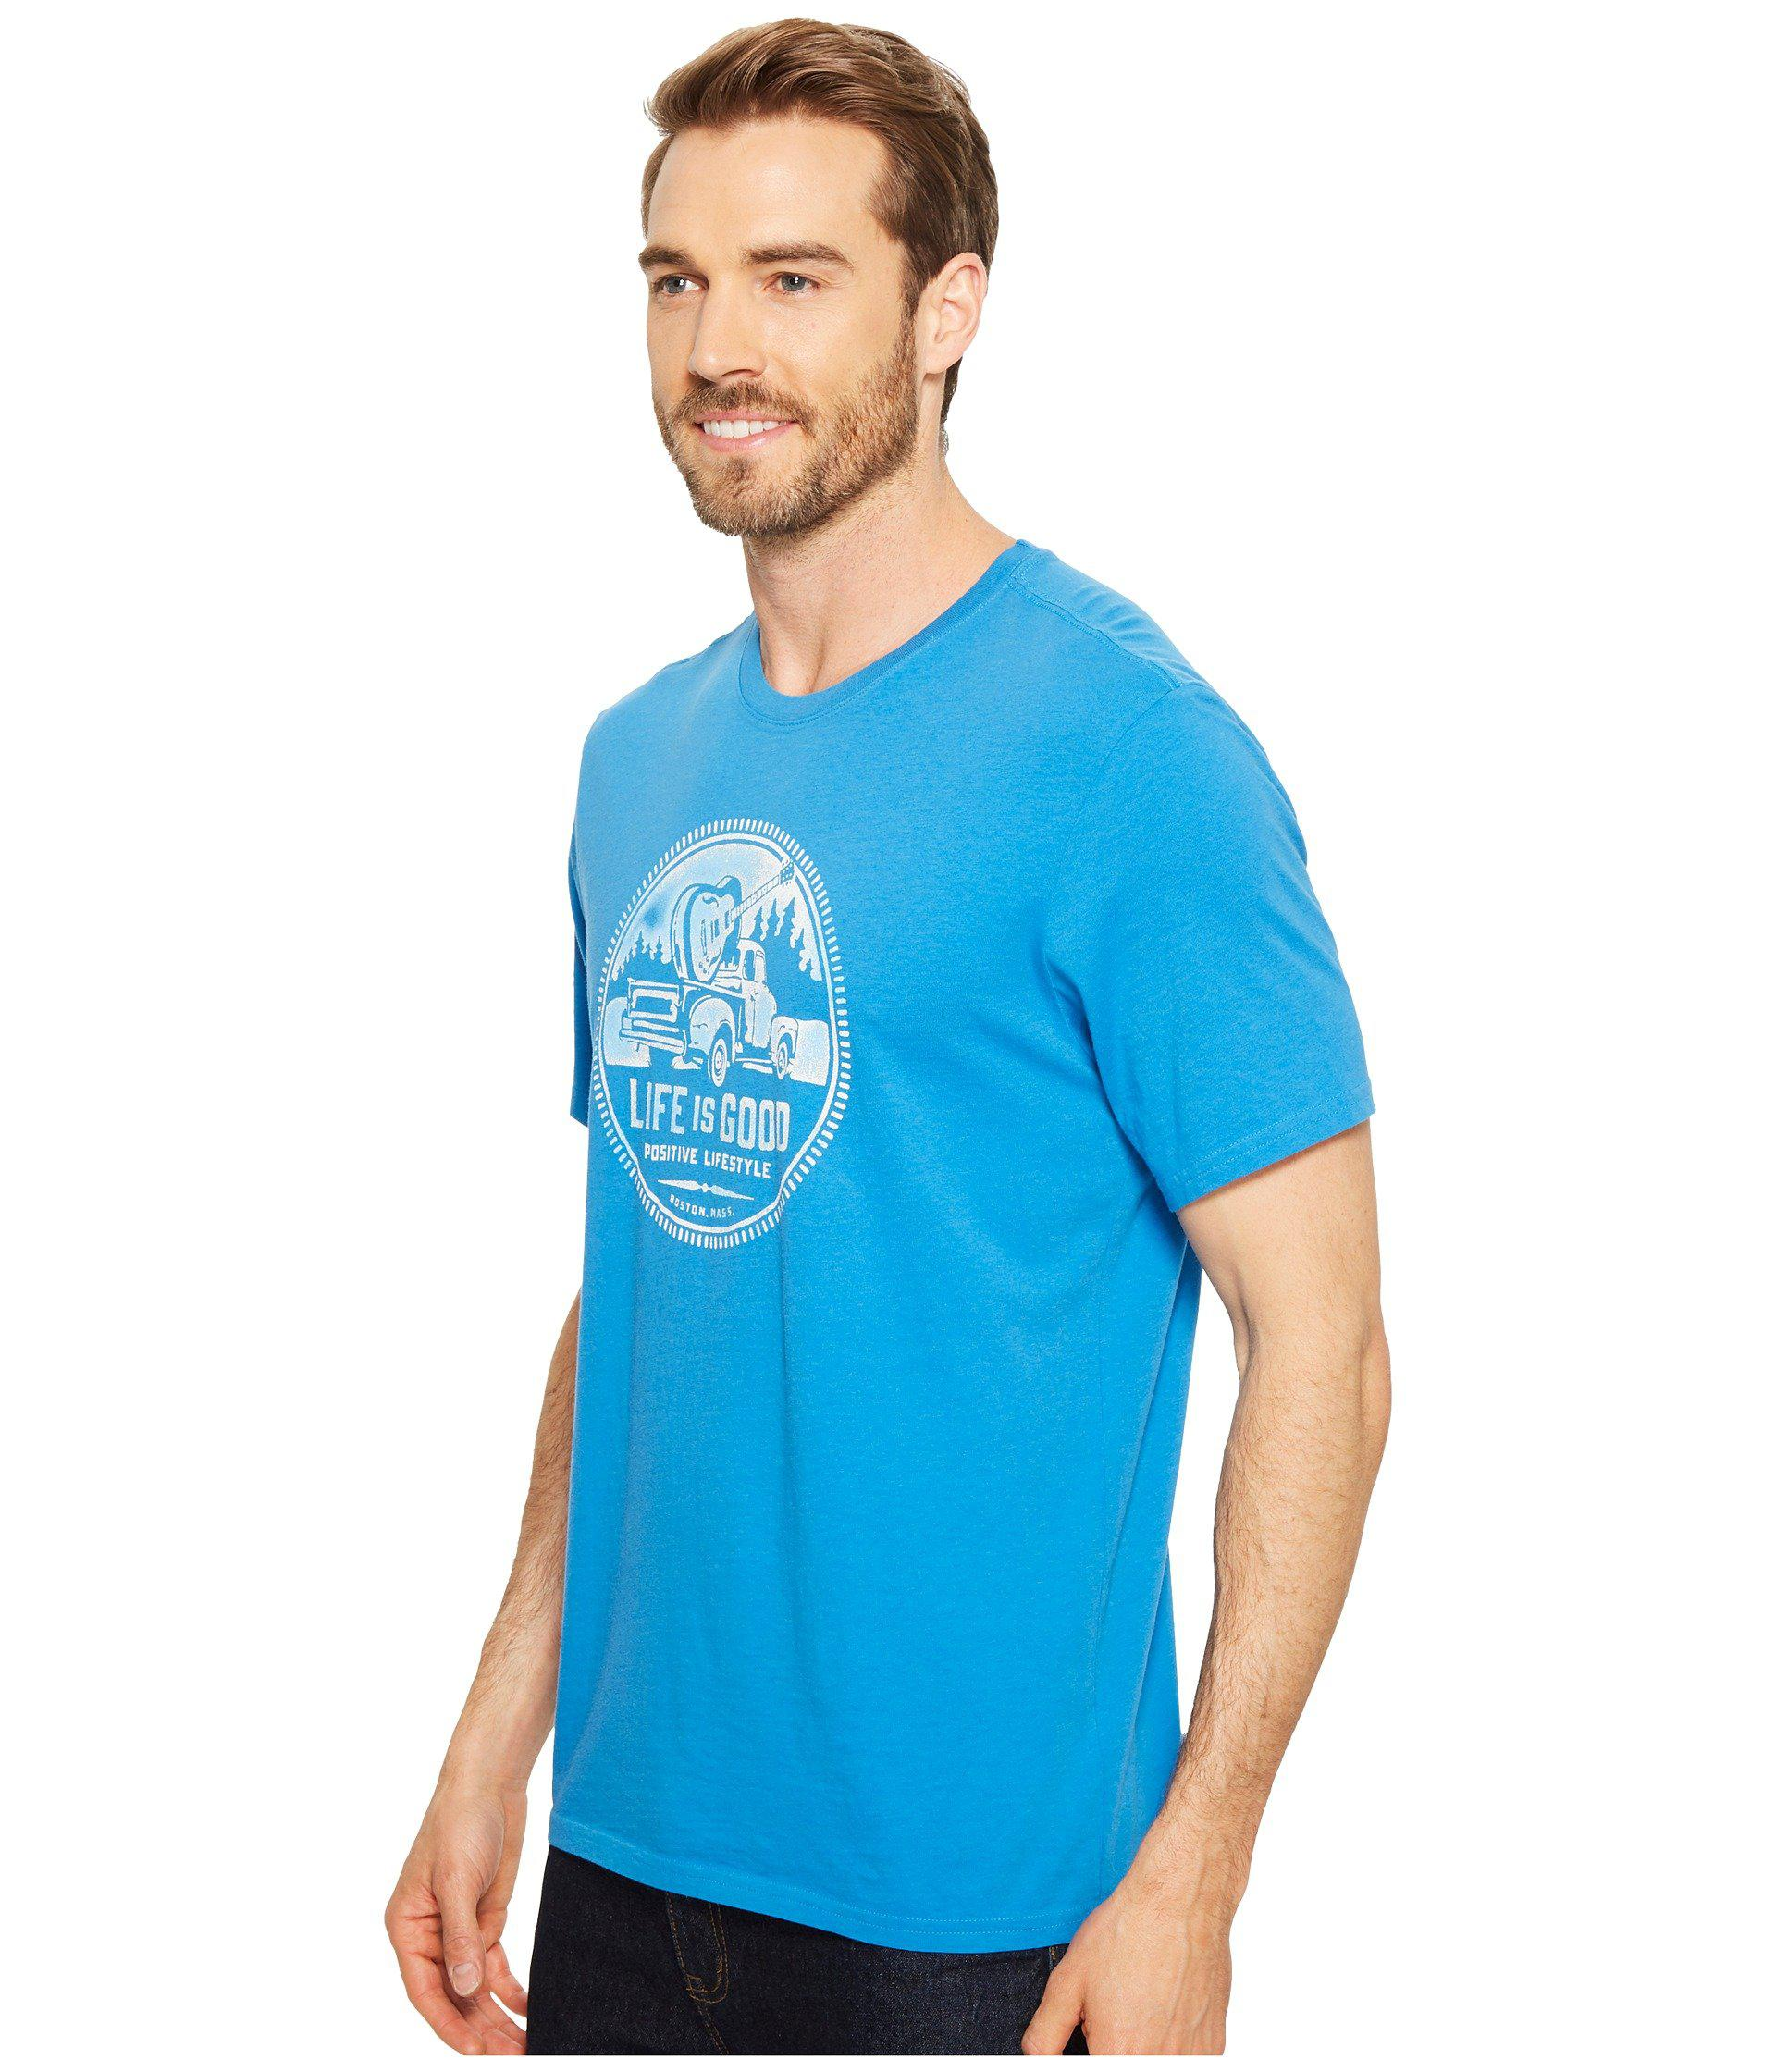 Life is Good Positive Lifestyle Truck Smooth Tee